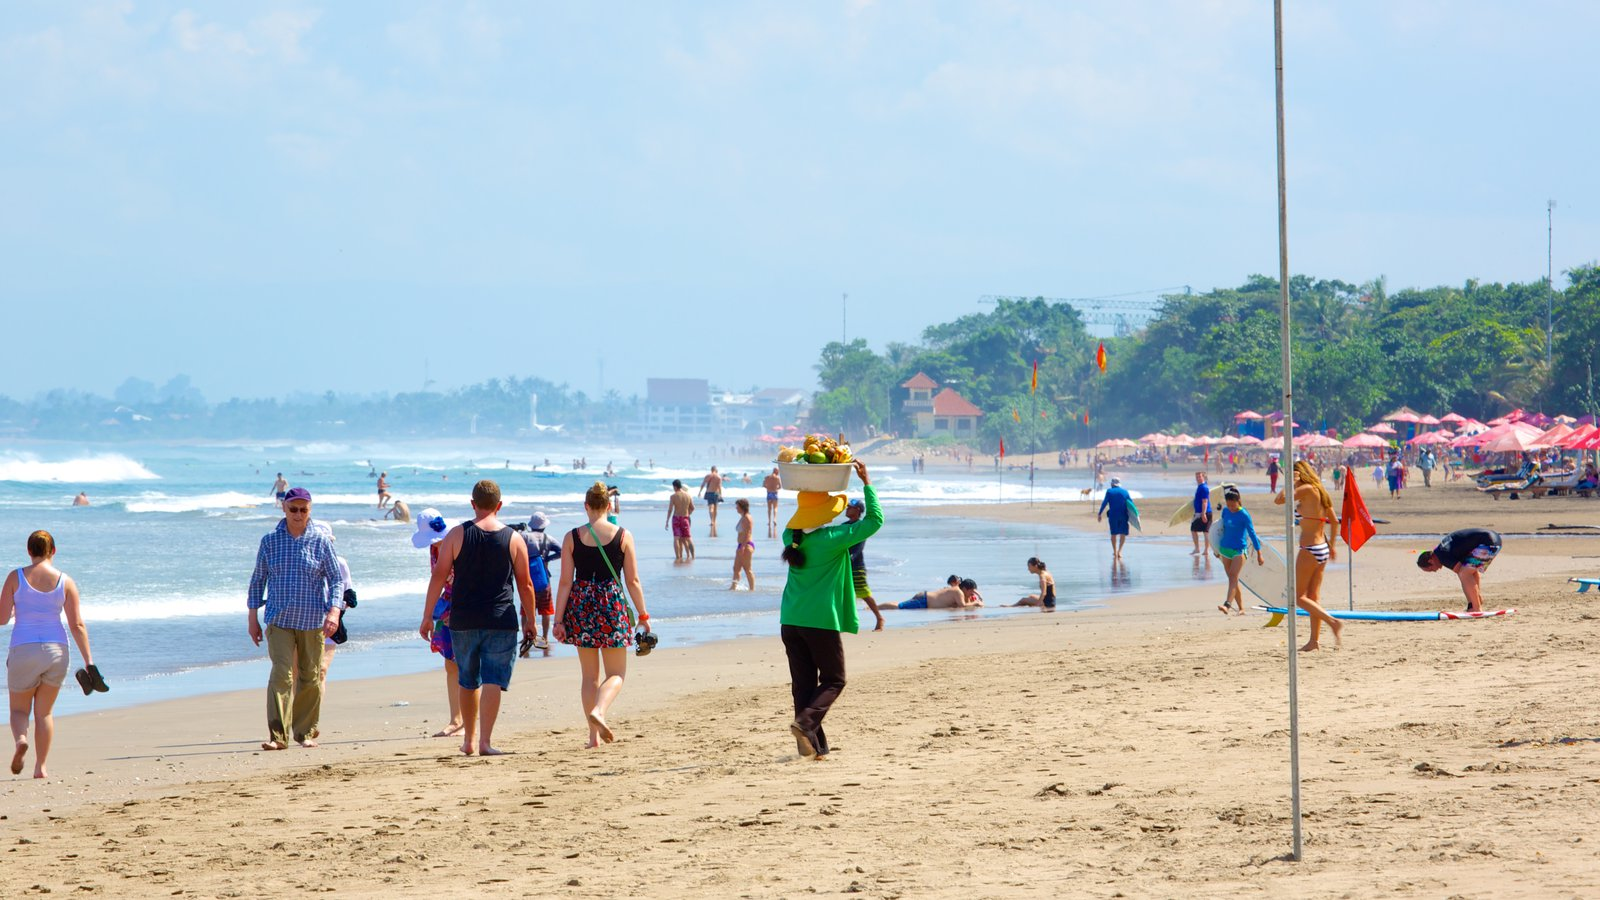 Beach Pictures View Images Double Featuring Large Group People Pantai